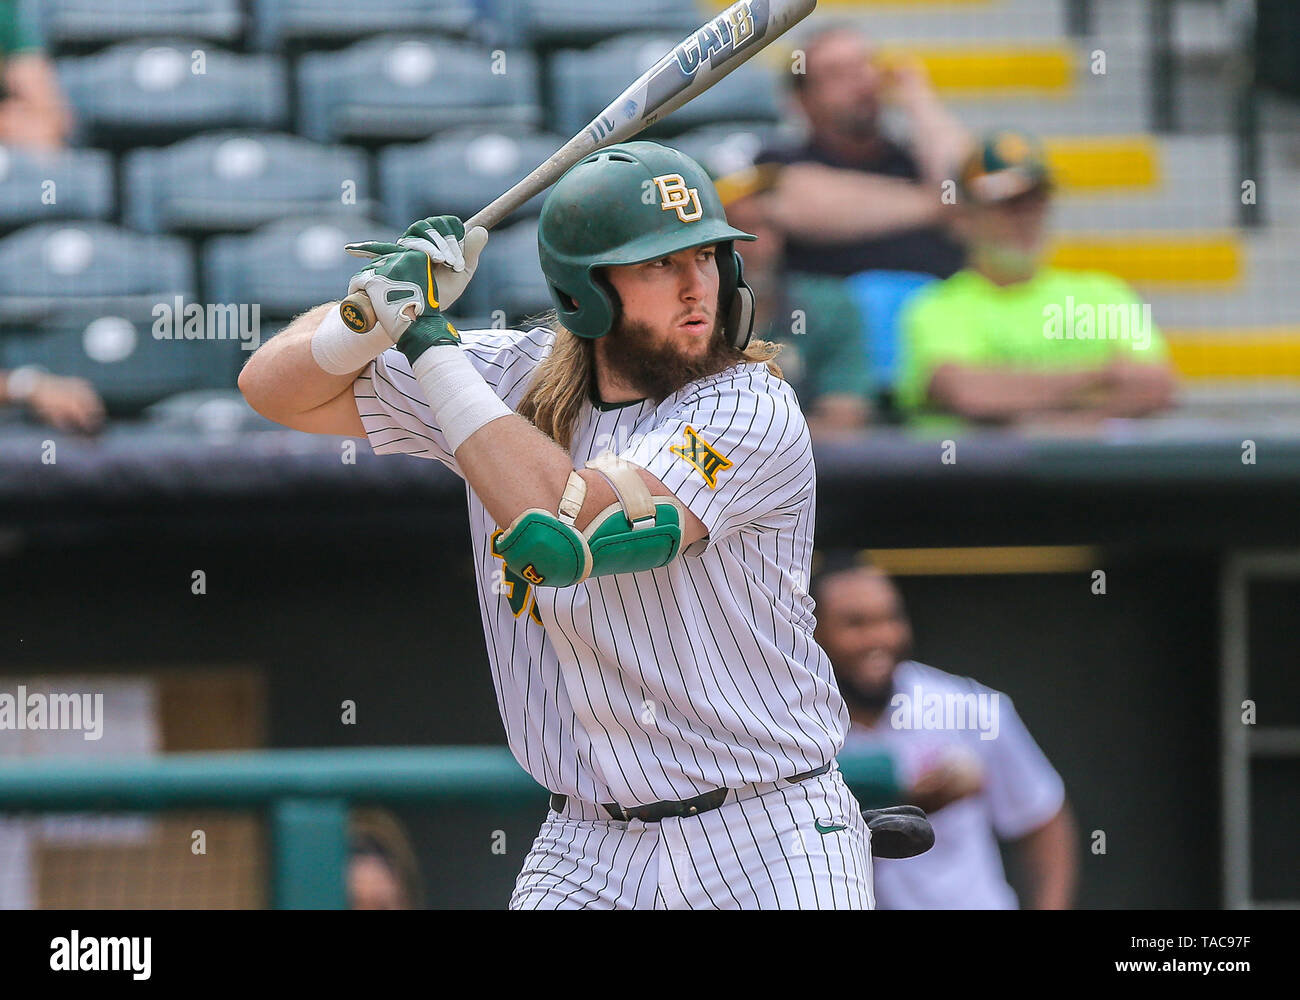 Oklahoma City, OK, USA. 22nd May, 2019. Baylor infielder Davis Wendzel (33) at bat during a 2019 Phillips 66 Big 12 Baseball Championship first round game between the Oklahoma Sooners and the Baylor Bears at Chickasaw Bricktown Ballpark in Oklahoma City, OK. Gray Siegel/CSM/Alamy Live News Stock Photo